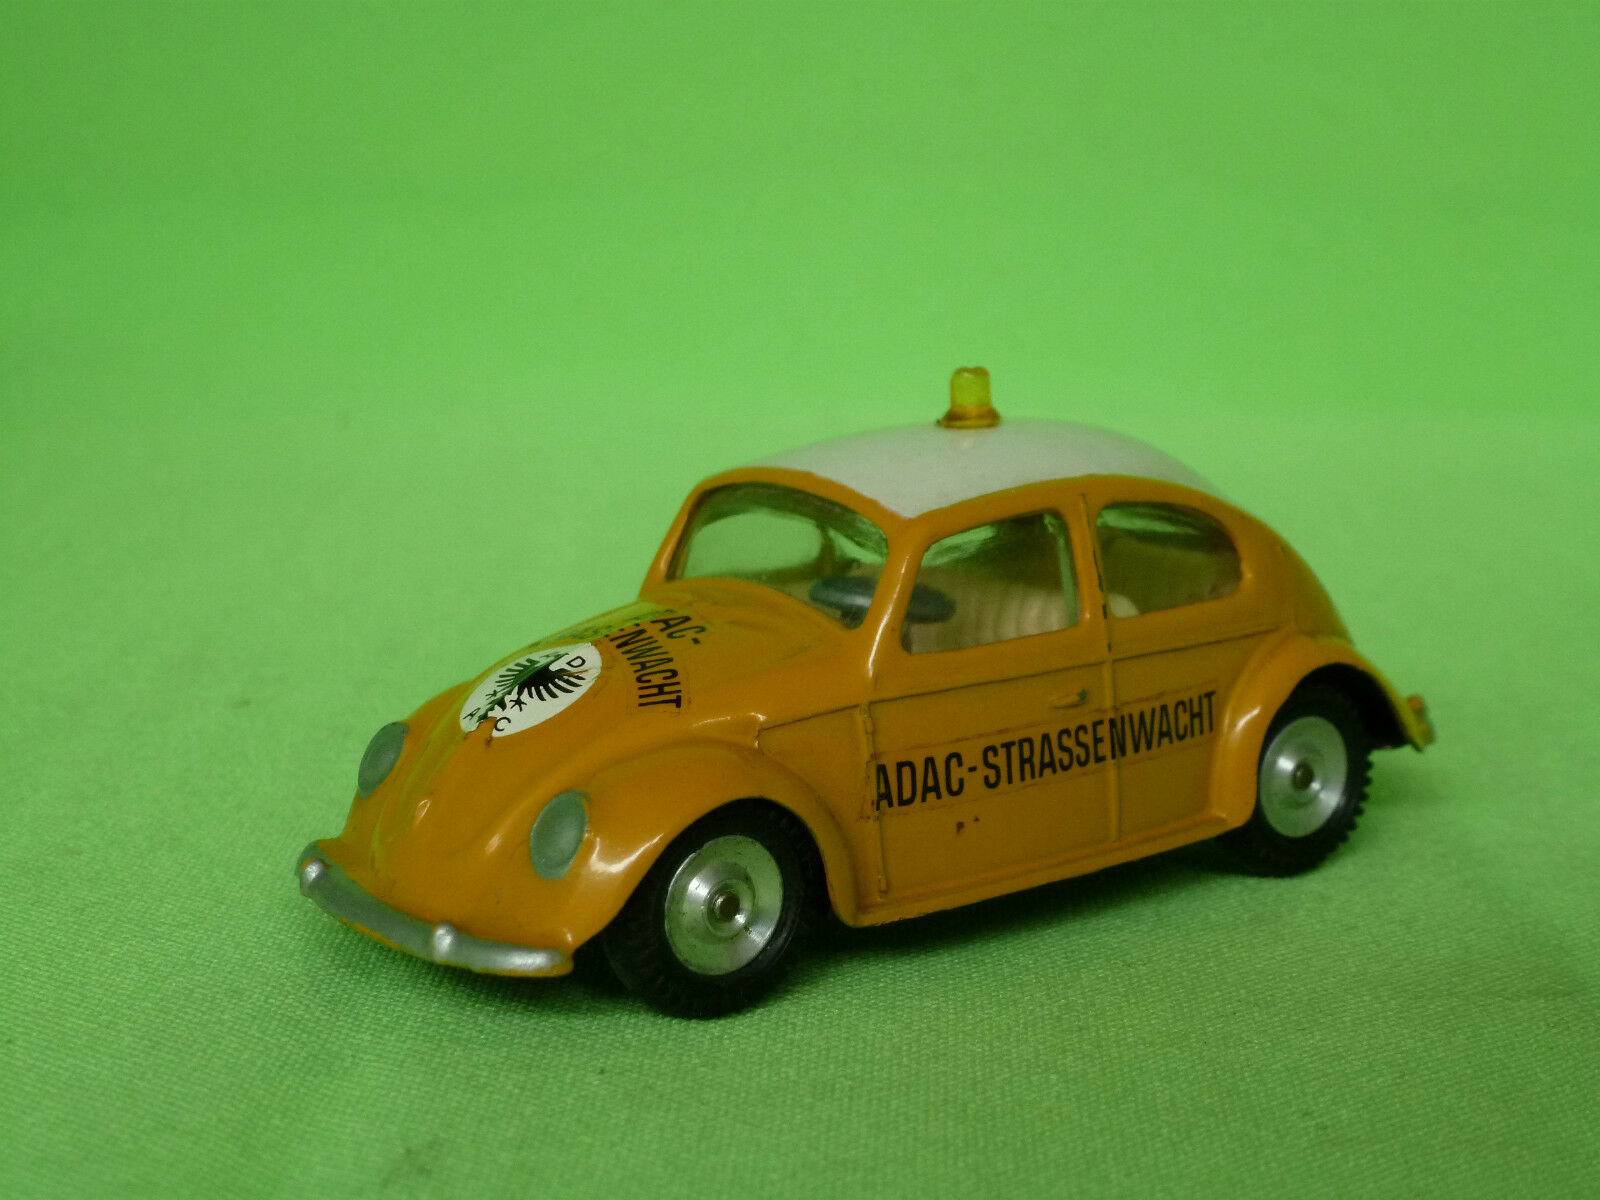 ¡envío gratis! GAMA MINI VOLKSWAGEN VW - ADAC STRASSENWACHT - - -  NEAR MINT CONDITION  servicio honesto